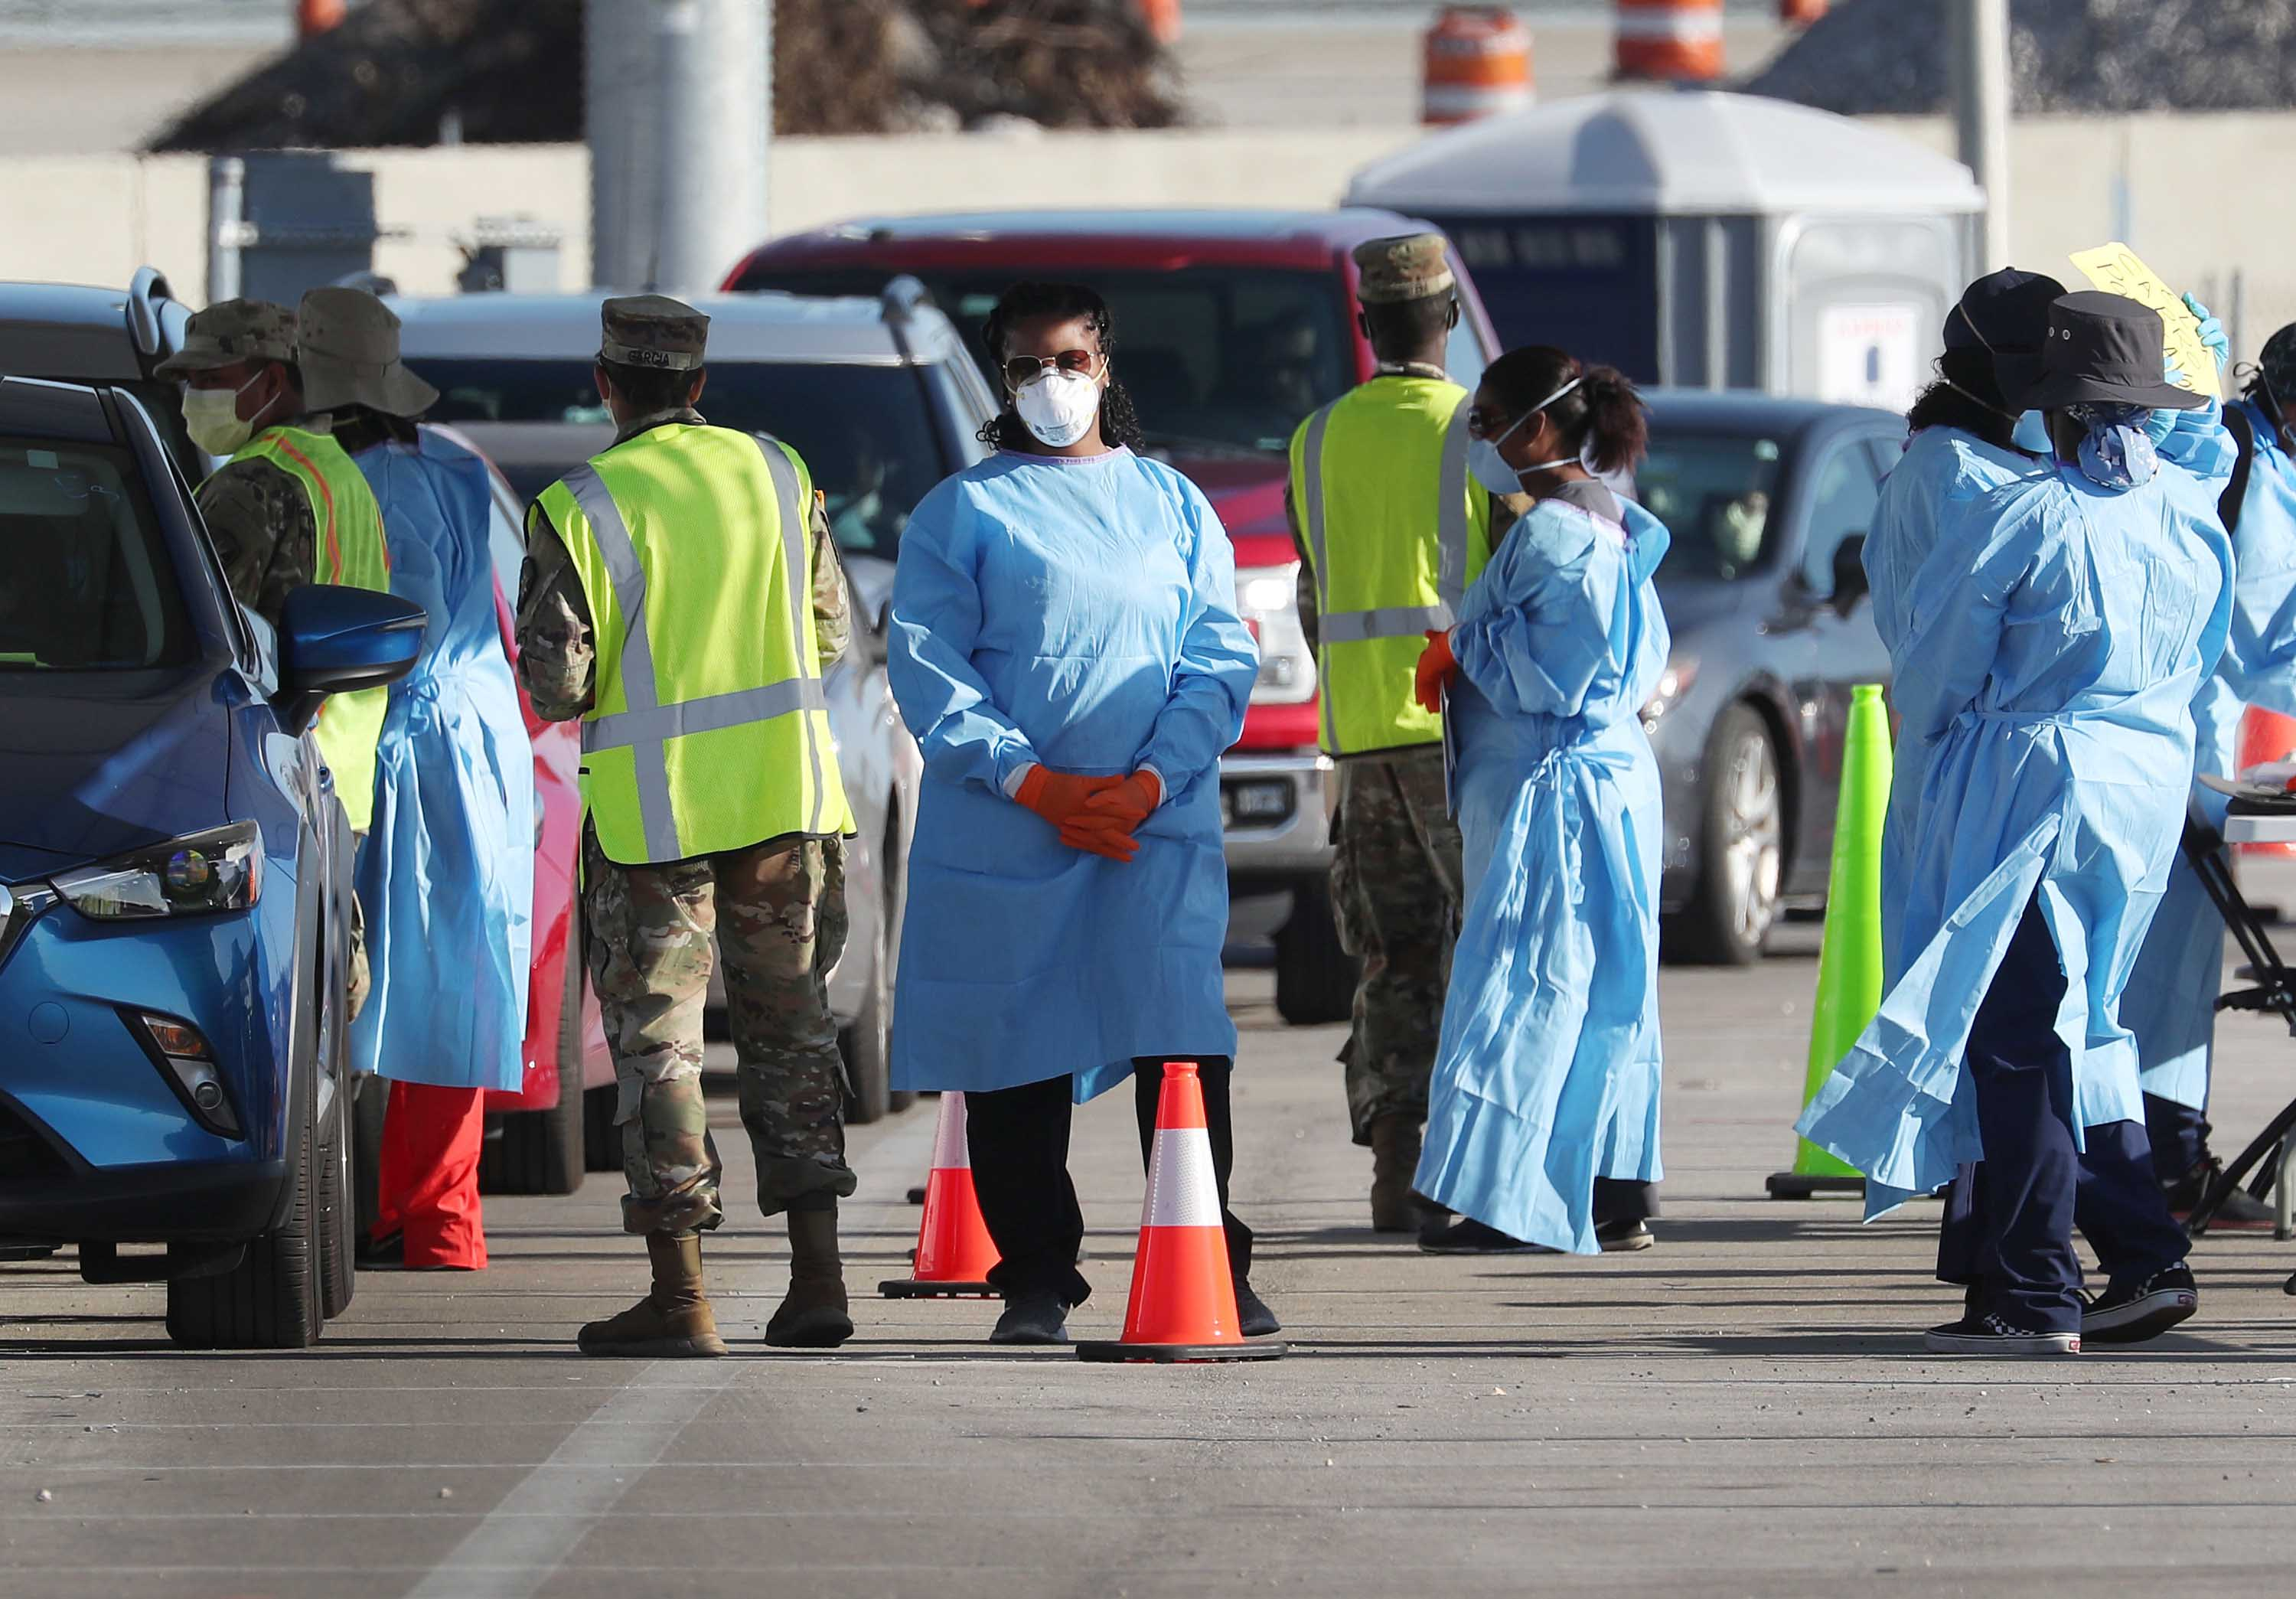 Health care workers check in people at a testing site setup by the the Florida National Guard, in Miami Gardens, Florida, on March 30.